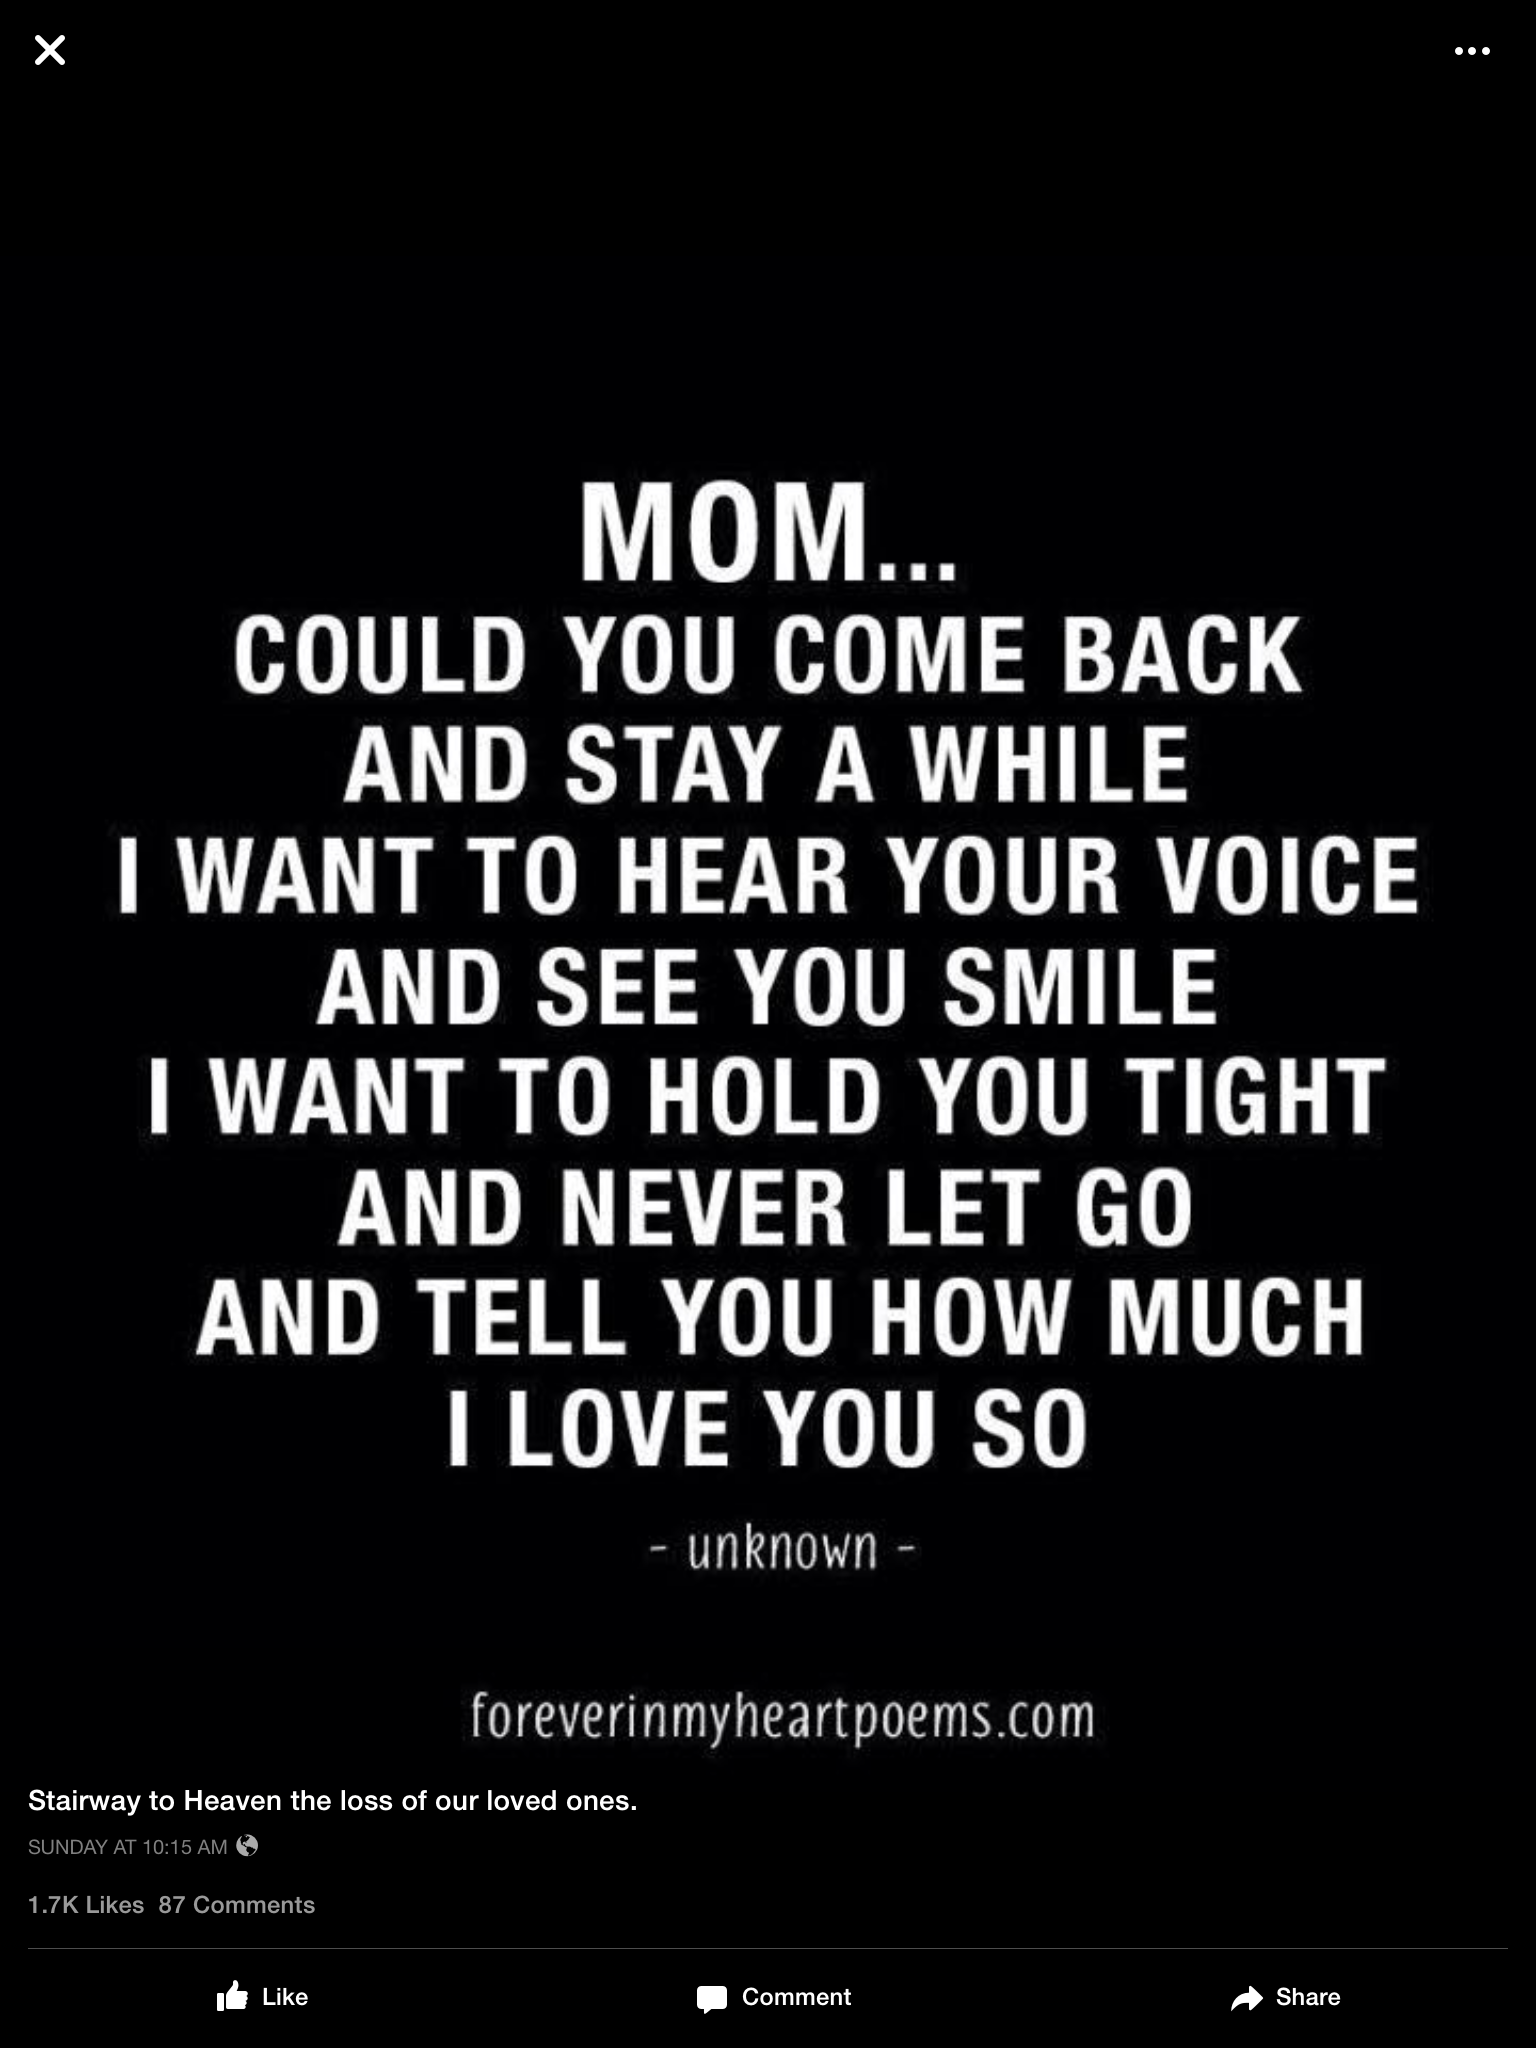 I Want My Father And Sister To Come Back Too In Memory Of Mom